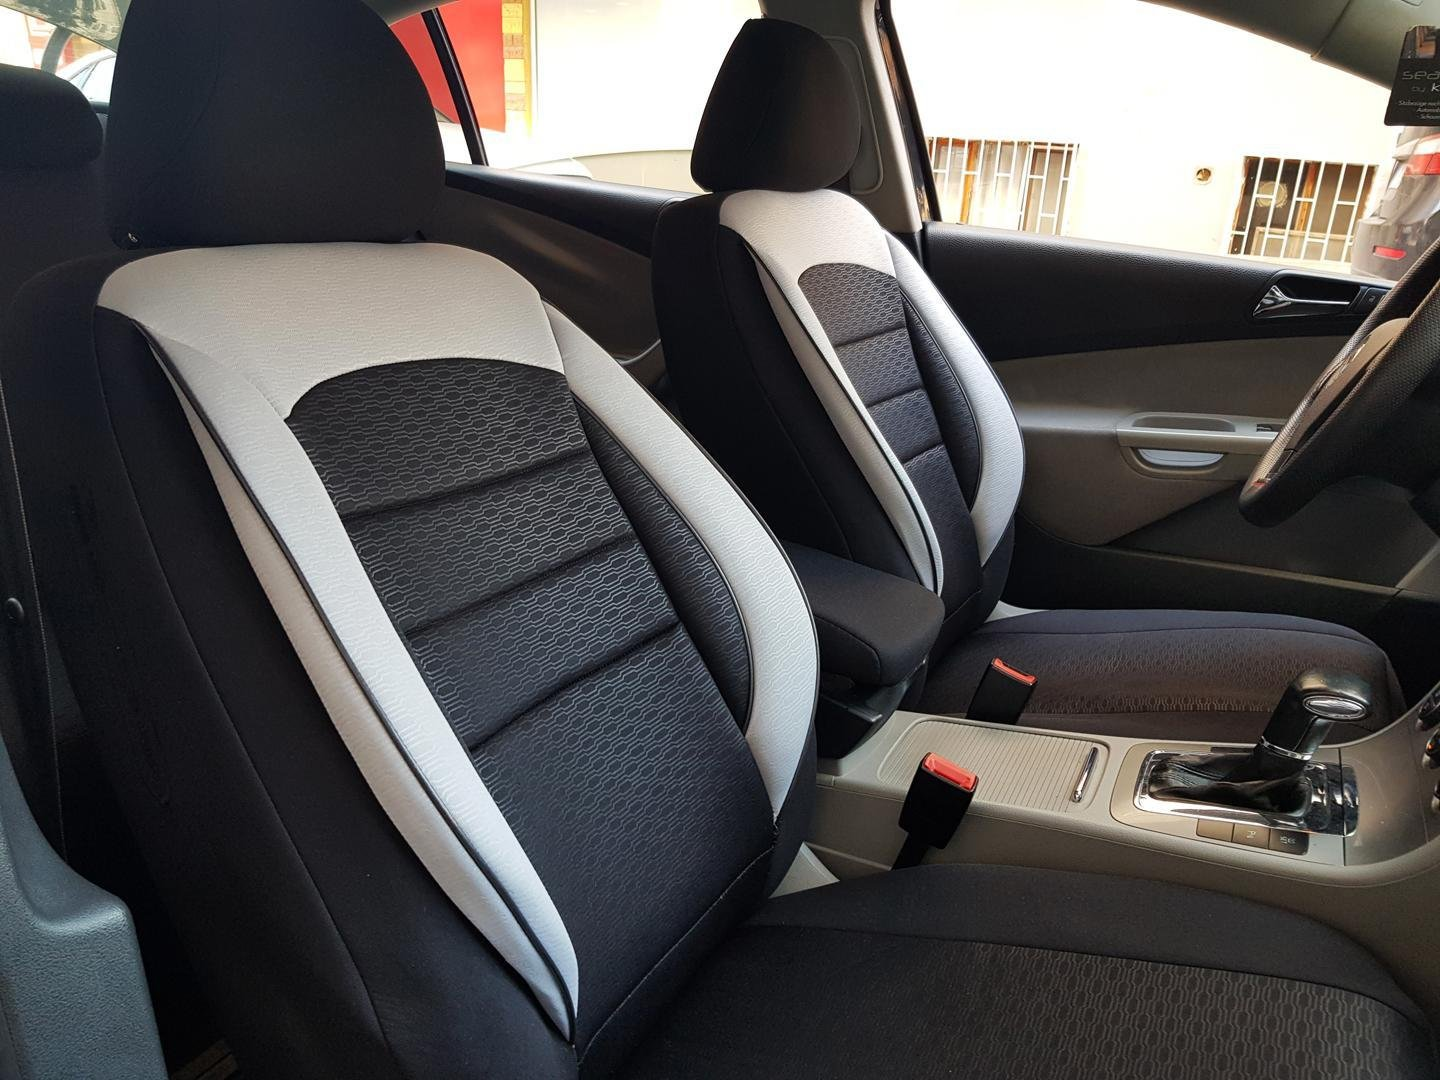 Car Seat Covers Protectors Audi A1 8x Black White No26 Complete